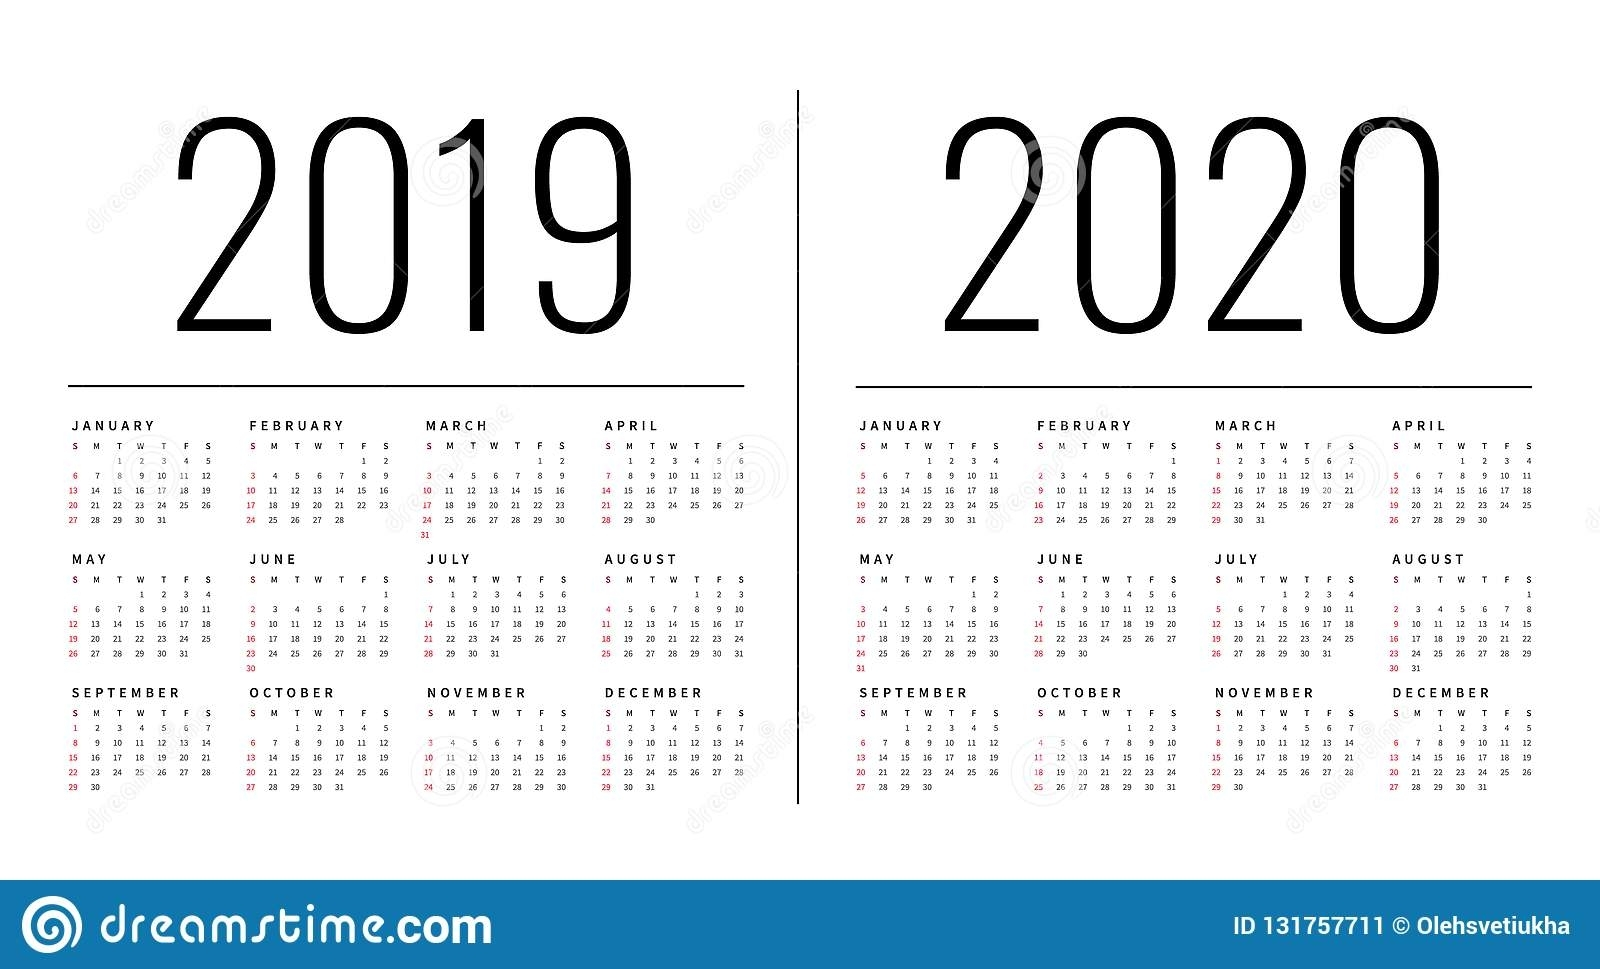 Mockup Simple Calendar Layout For 2019 And 2020 Years. Week Starts with regard to 2019-2020 Calendar Starting On Mondays